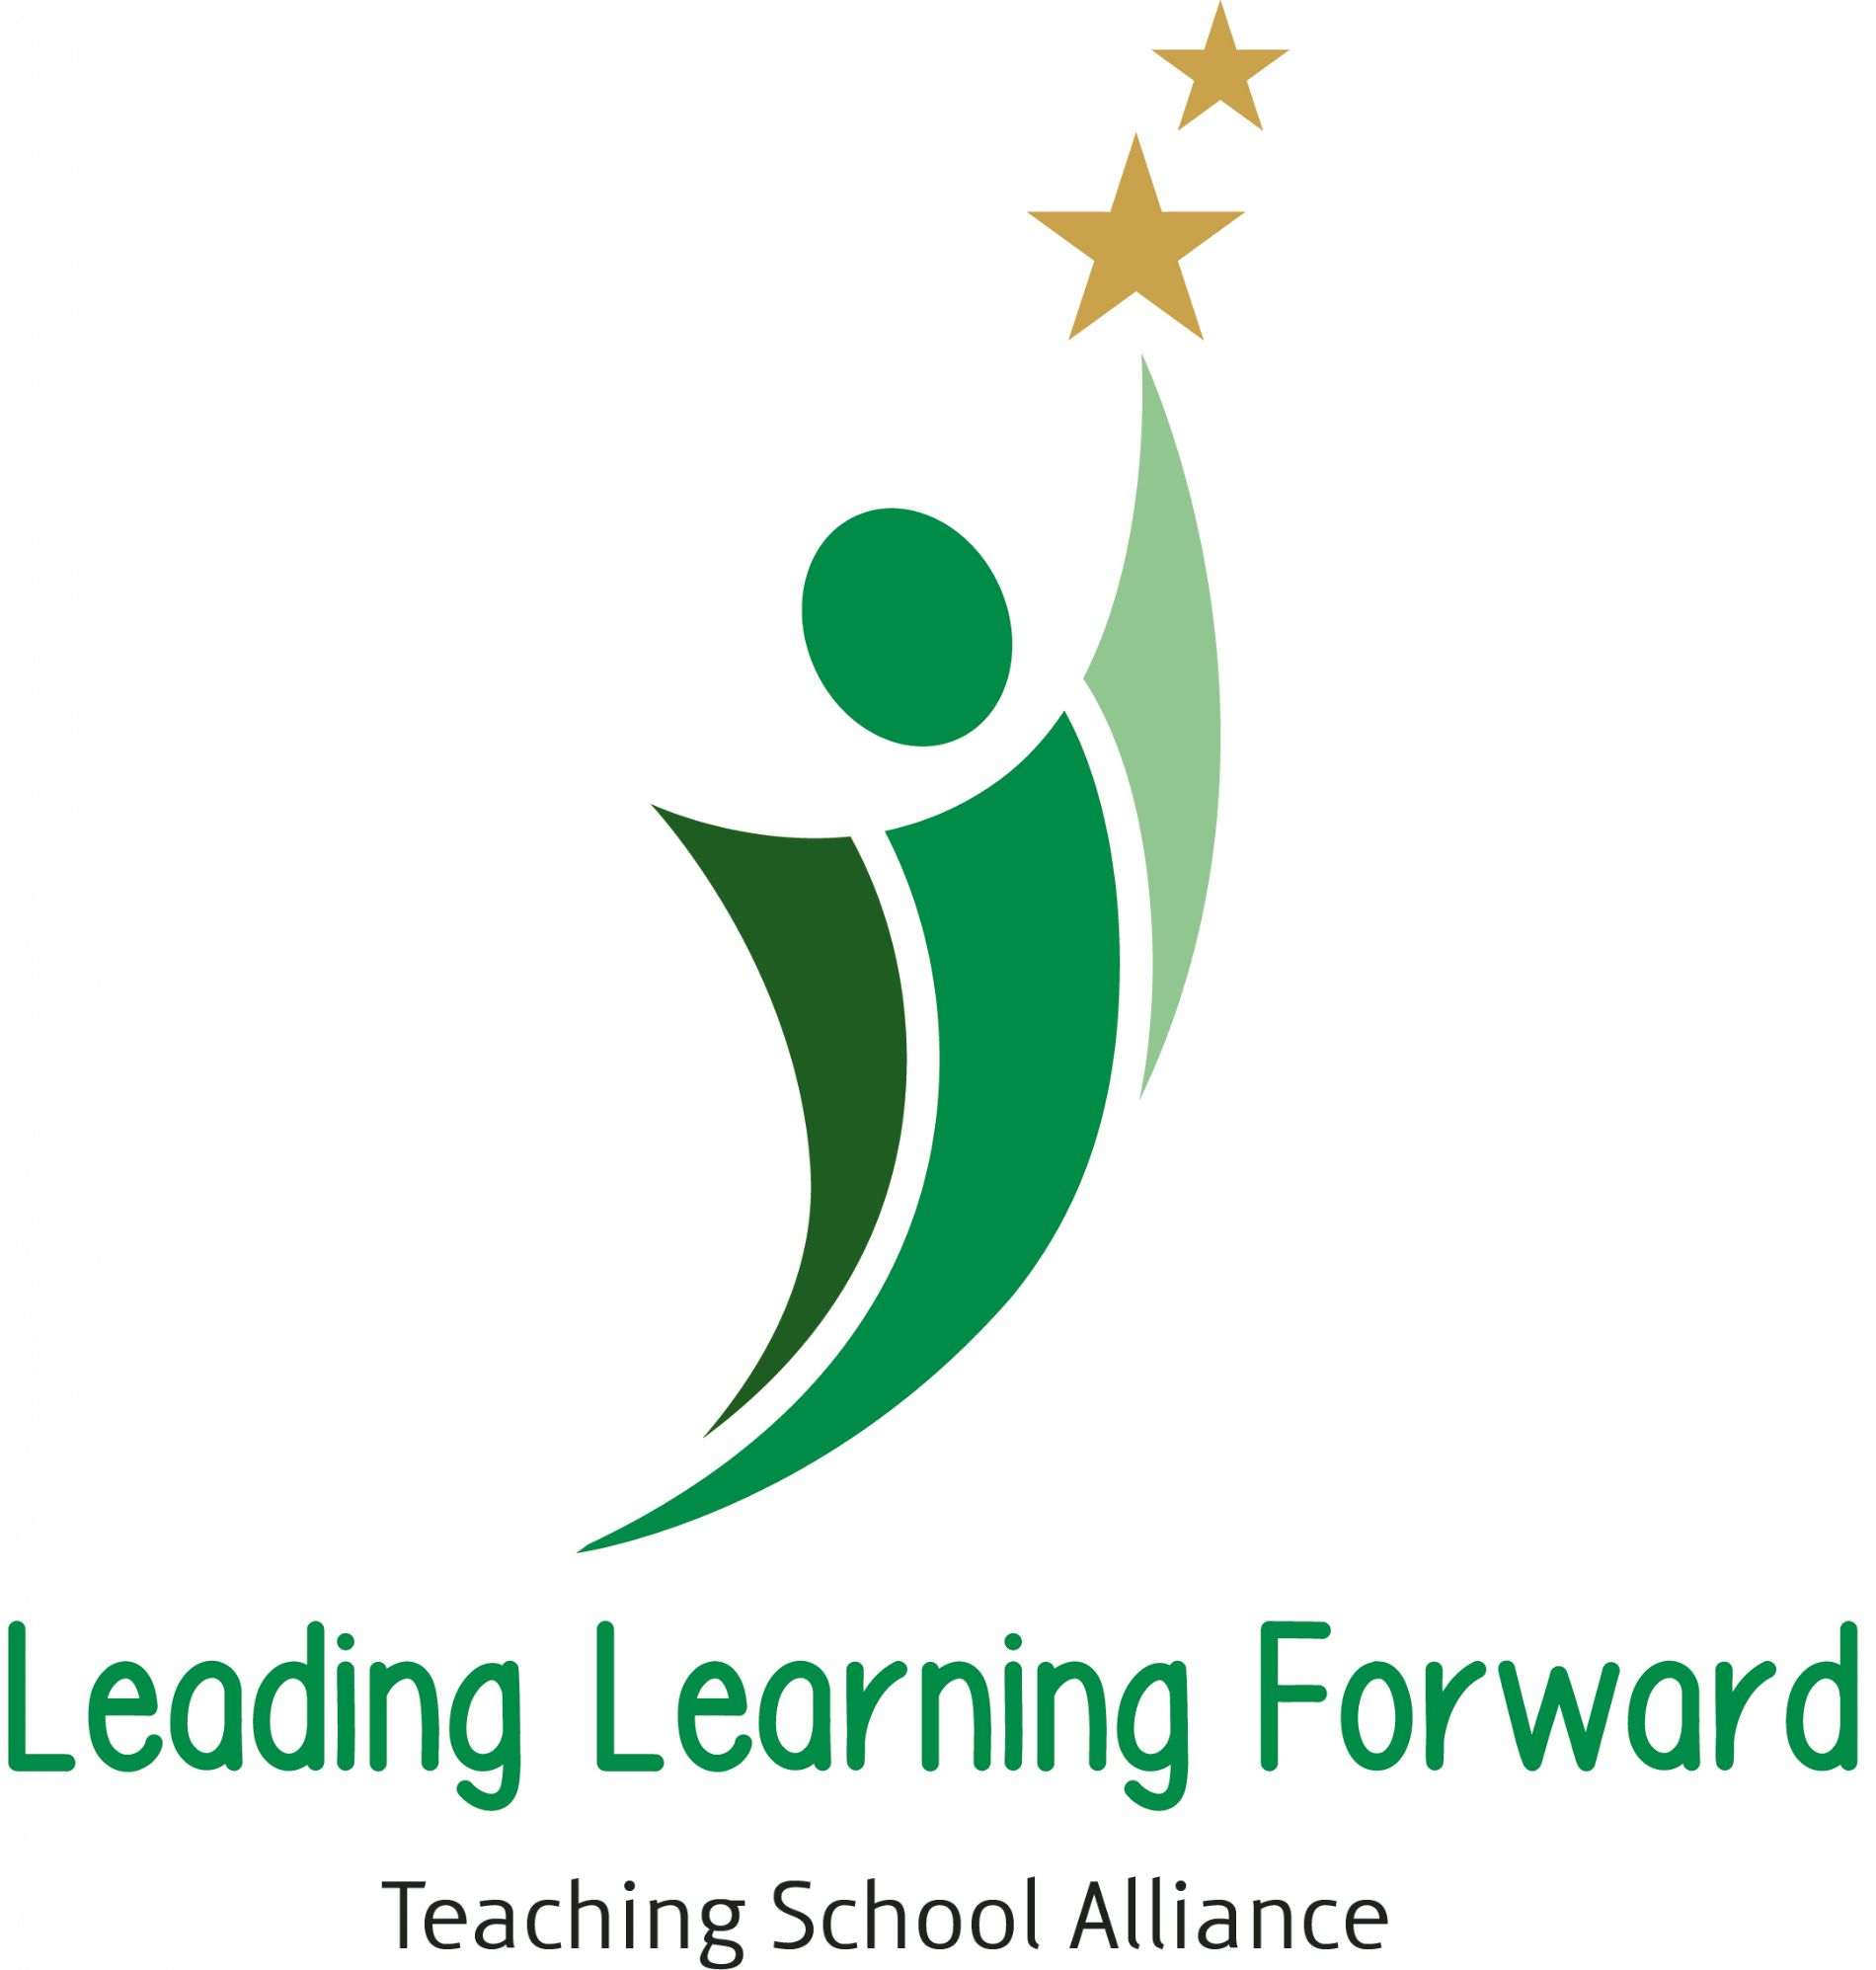 Leading Learning Forward Teaching School Alliance